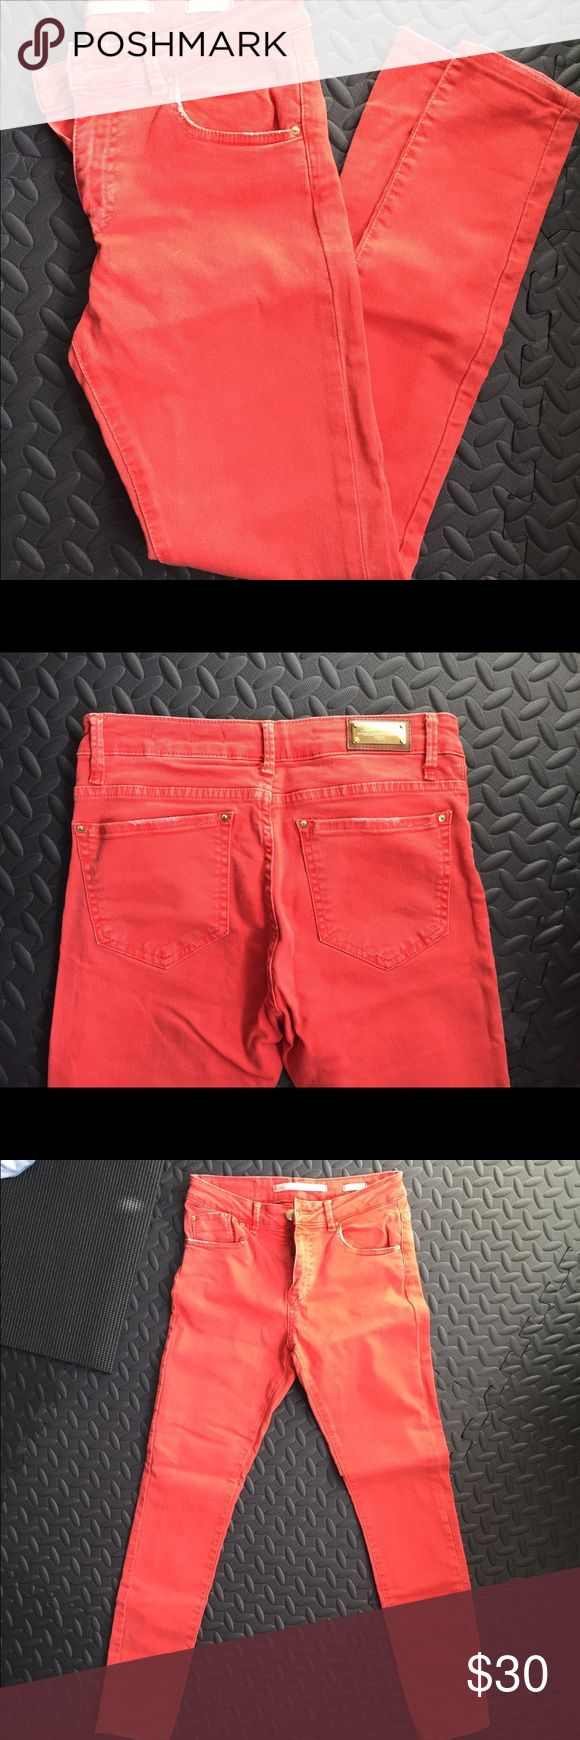 Zara Jeans Size 36 (4) like new Zara pair of skinny jeans, red, perfect for fall. Like new confition, bought them but never wore them as they are a little too tight for me. Zara Jeans Skinny